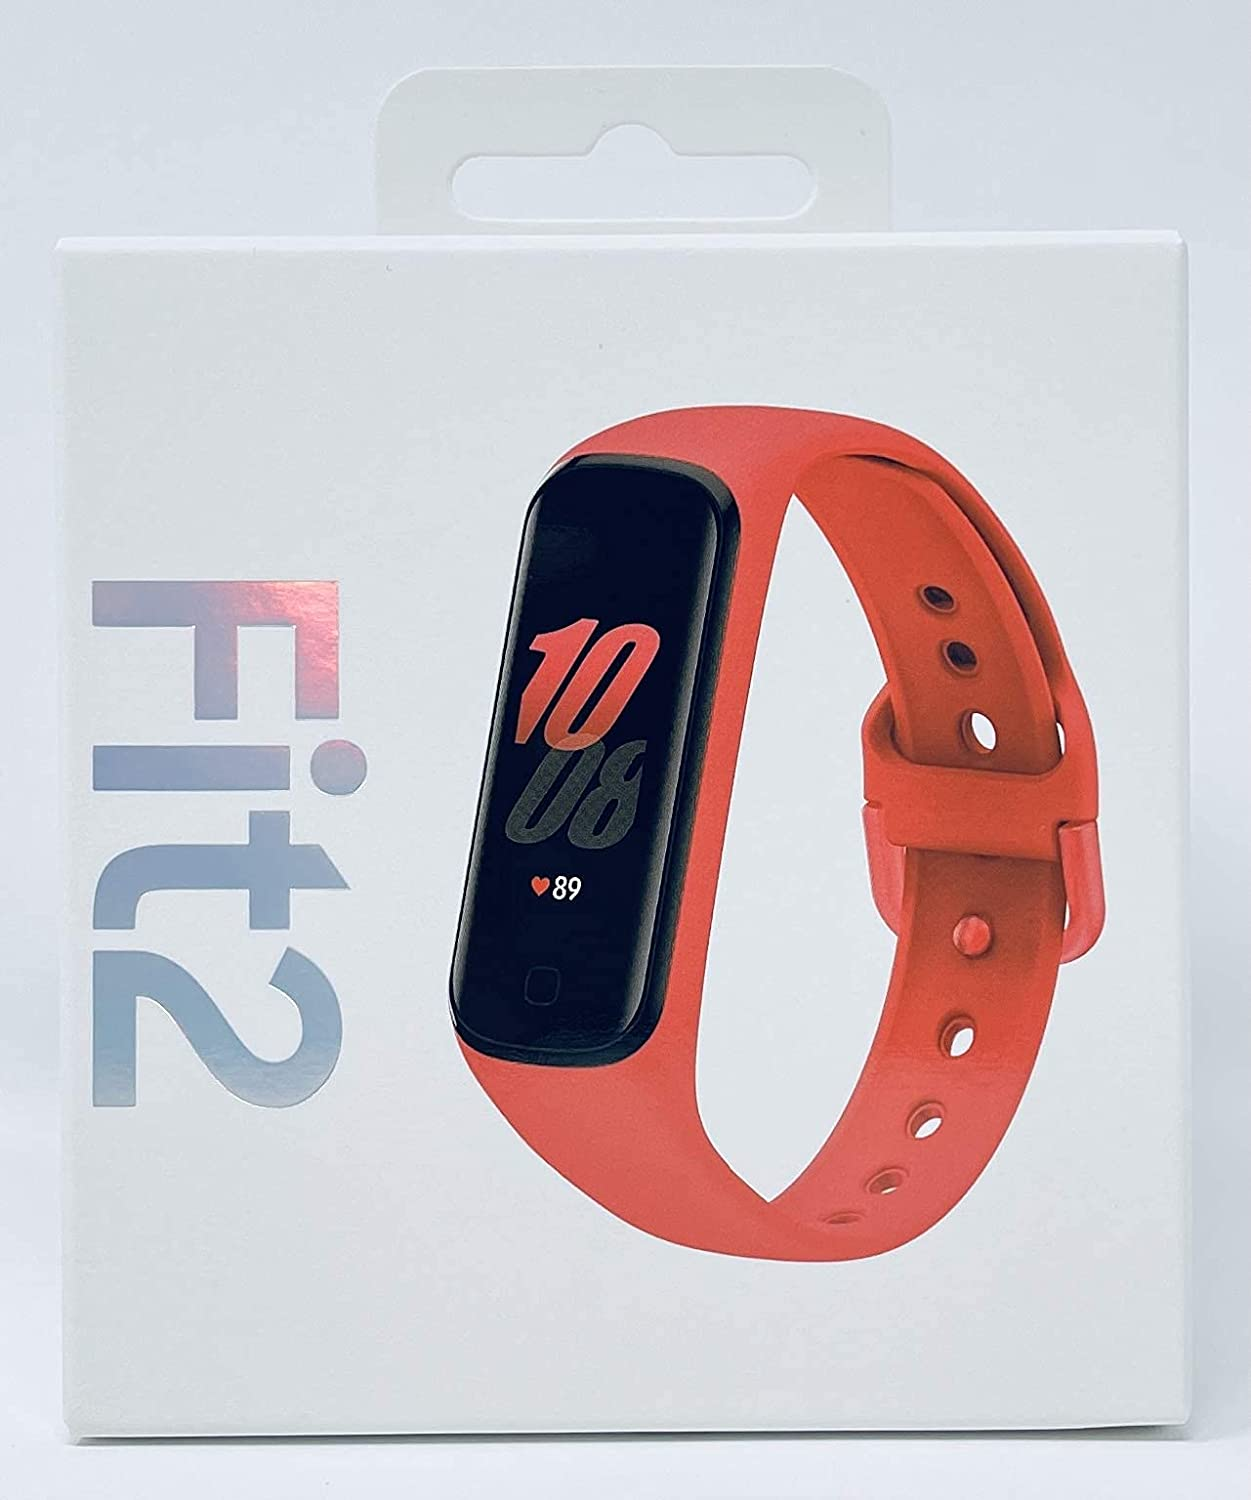 Samsung Recommendation Galaxy Fit Max 70% OFF 2 Bluetooth Tracking Band Fitness Red Smart